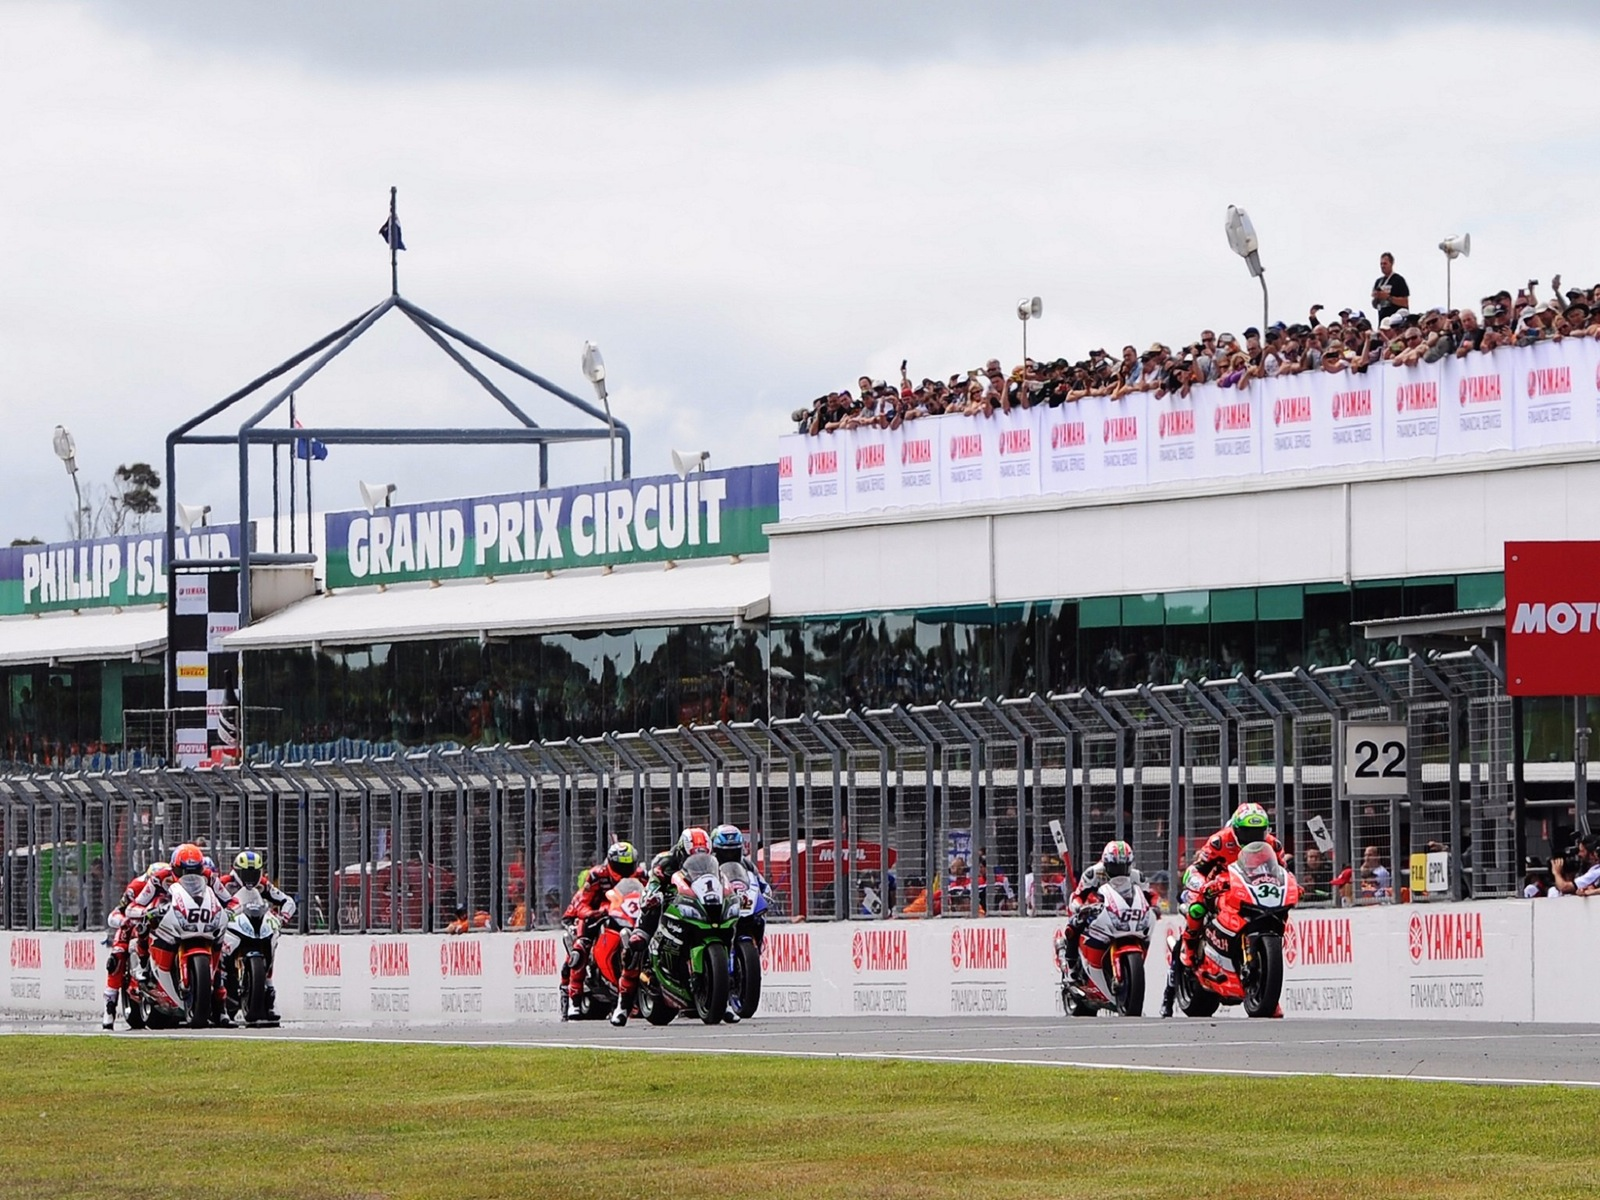 Phillip Island Grand Prix Circuit Start/Finish Line